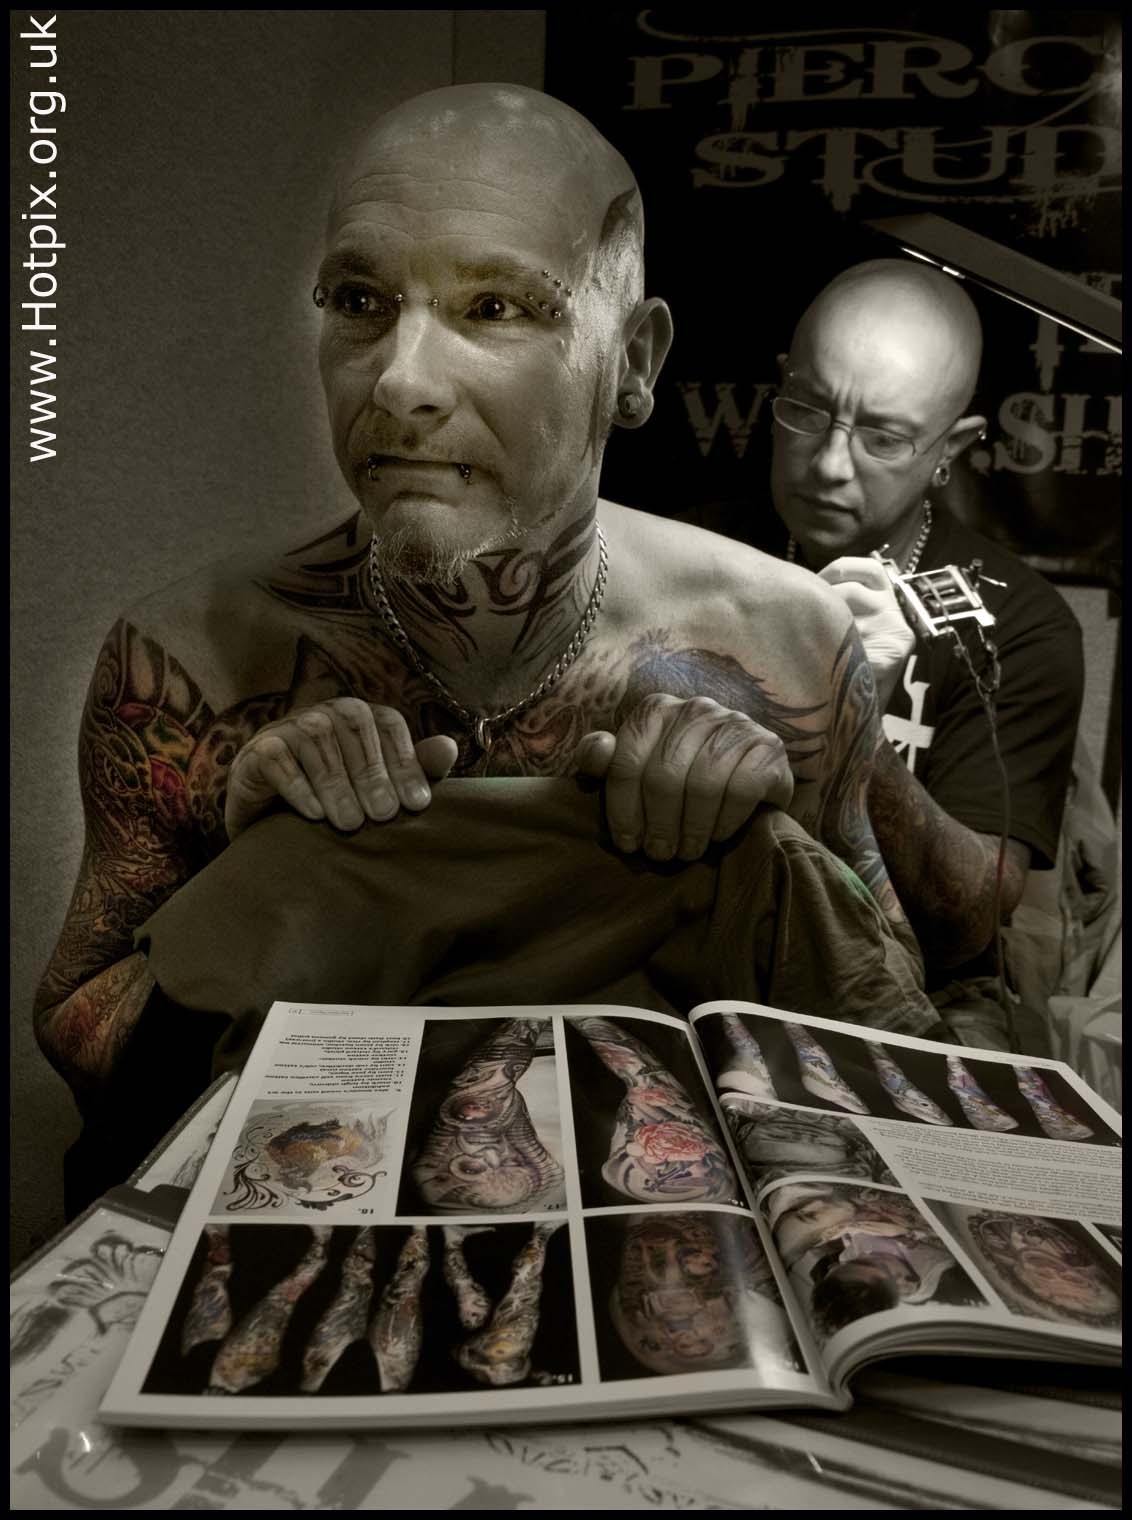 tat2,books,exotic,tattoo,erotic,manchester,central,gmex,exhibition,convention,2010,naked,reading,illustrations,man,men,boy,ink,needle,tony,smith,tonysmith,hotpix,hotpixuk,selective,color,colour,bw,black,white,mono,monochrome,echo,bunnymen,liverpool,north,west,indie,postpunk,post,punk,echo and the bunnymen,tats,tatoo,city,town,cool,person,people,portrait,image,selctive,colores,read,browsing,coffee,table,book,glossy,Tatuada,tatto,bodyart,body,art,dark,disturbia,hotpics,hotpic,hotpick,hotpicks,interesting,place,places,tatouage,merseyside